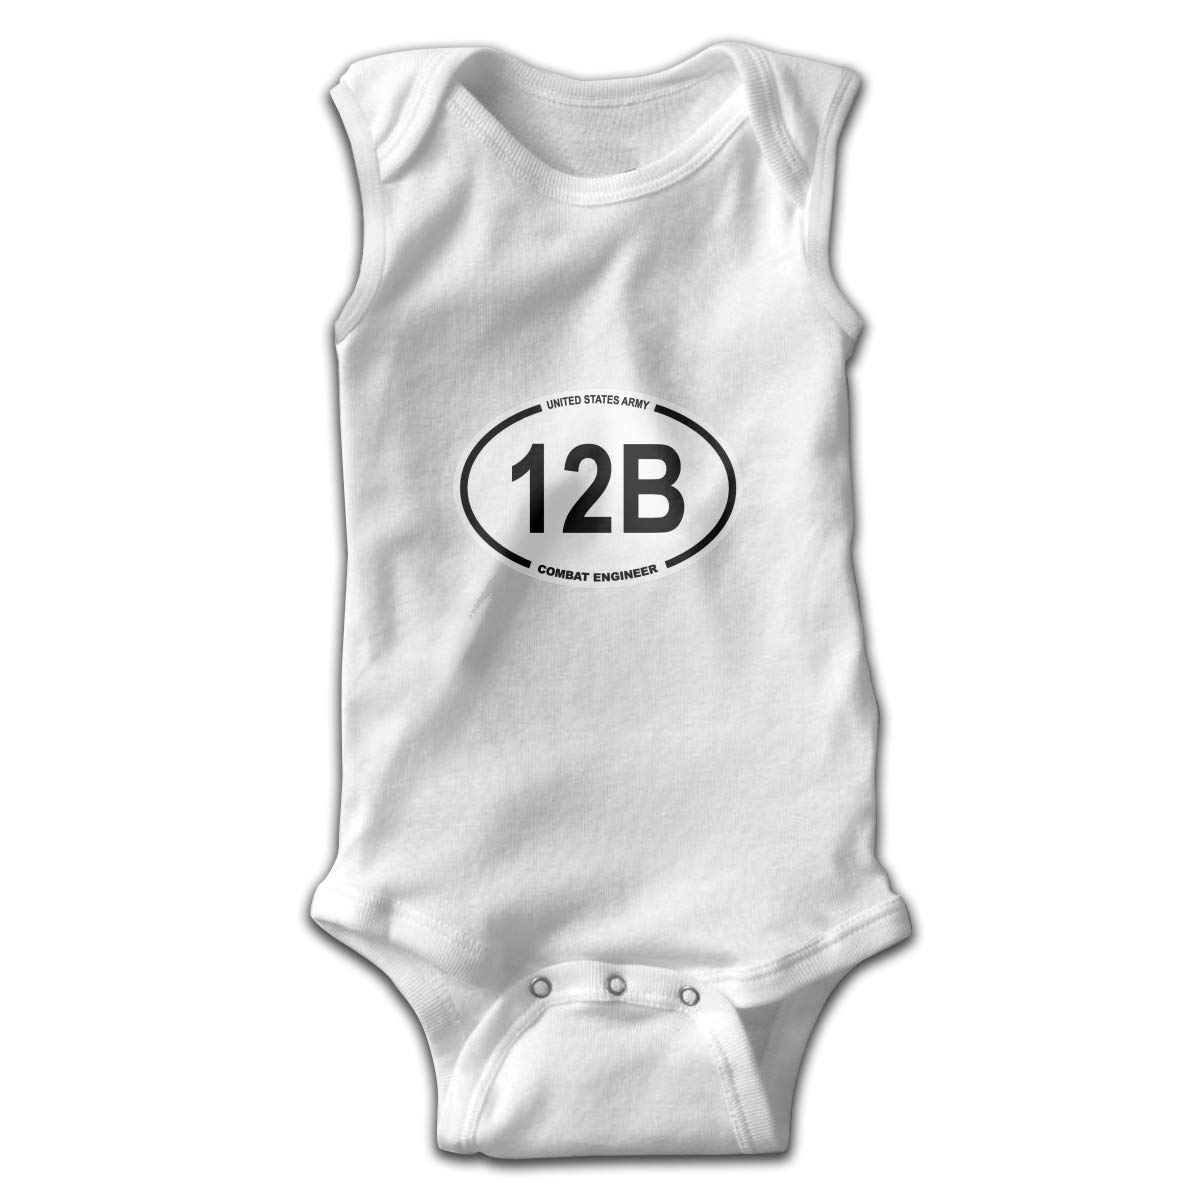 Us Army Mos 12b Combat Smalls Baby Onesie,Infant Bodysuit Black